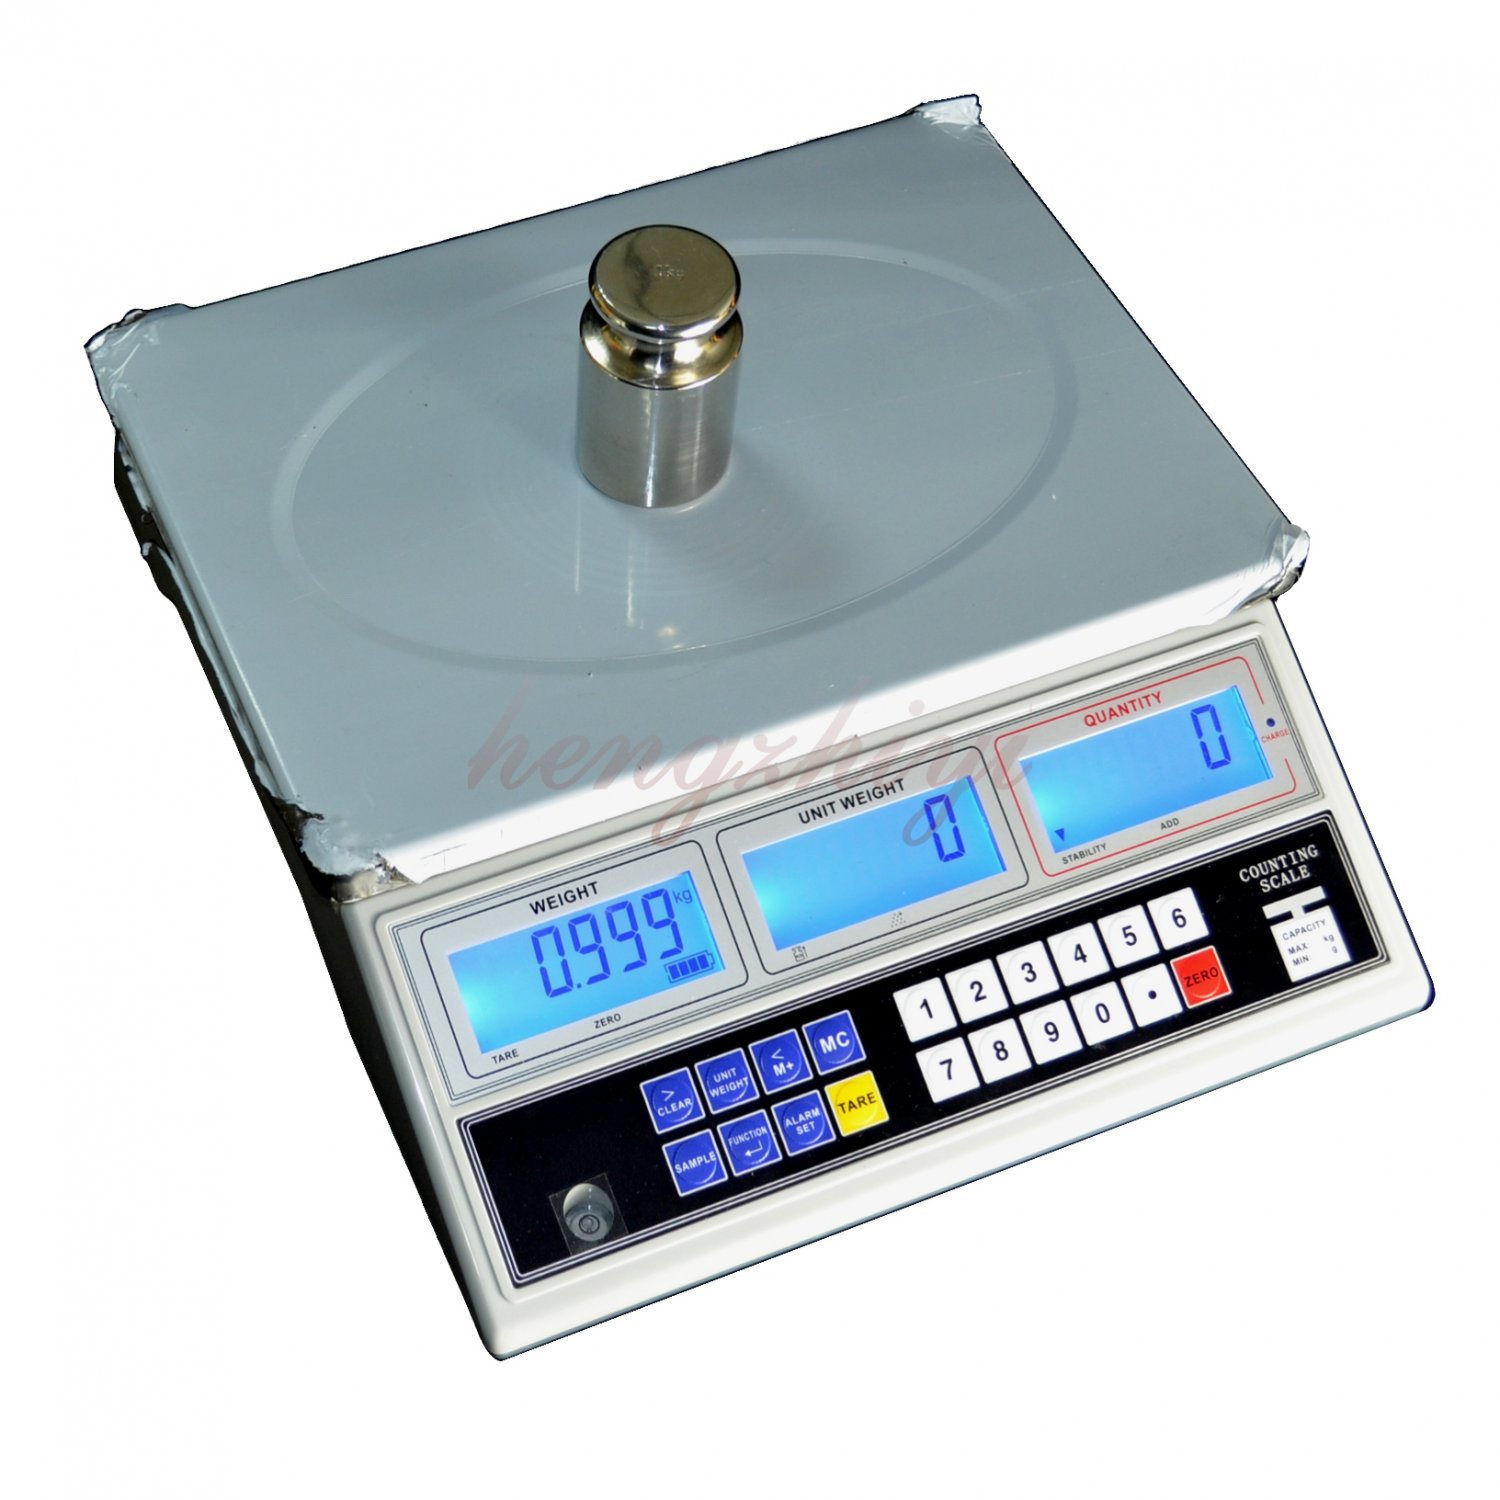 15kg x0.5g Precision Digital Counting Parts Scale, Table Top Weighing Balance, Free Shipping